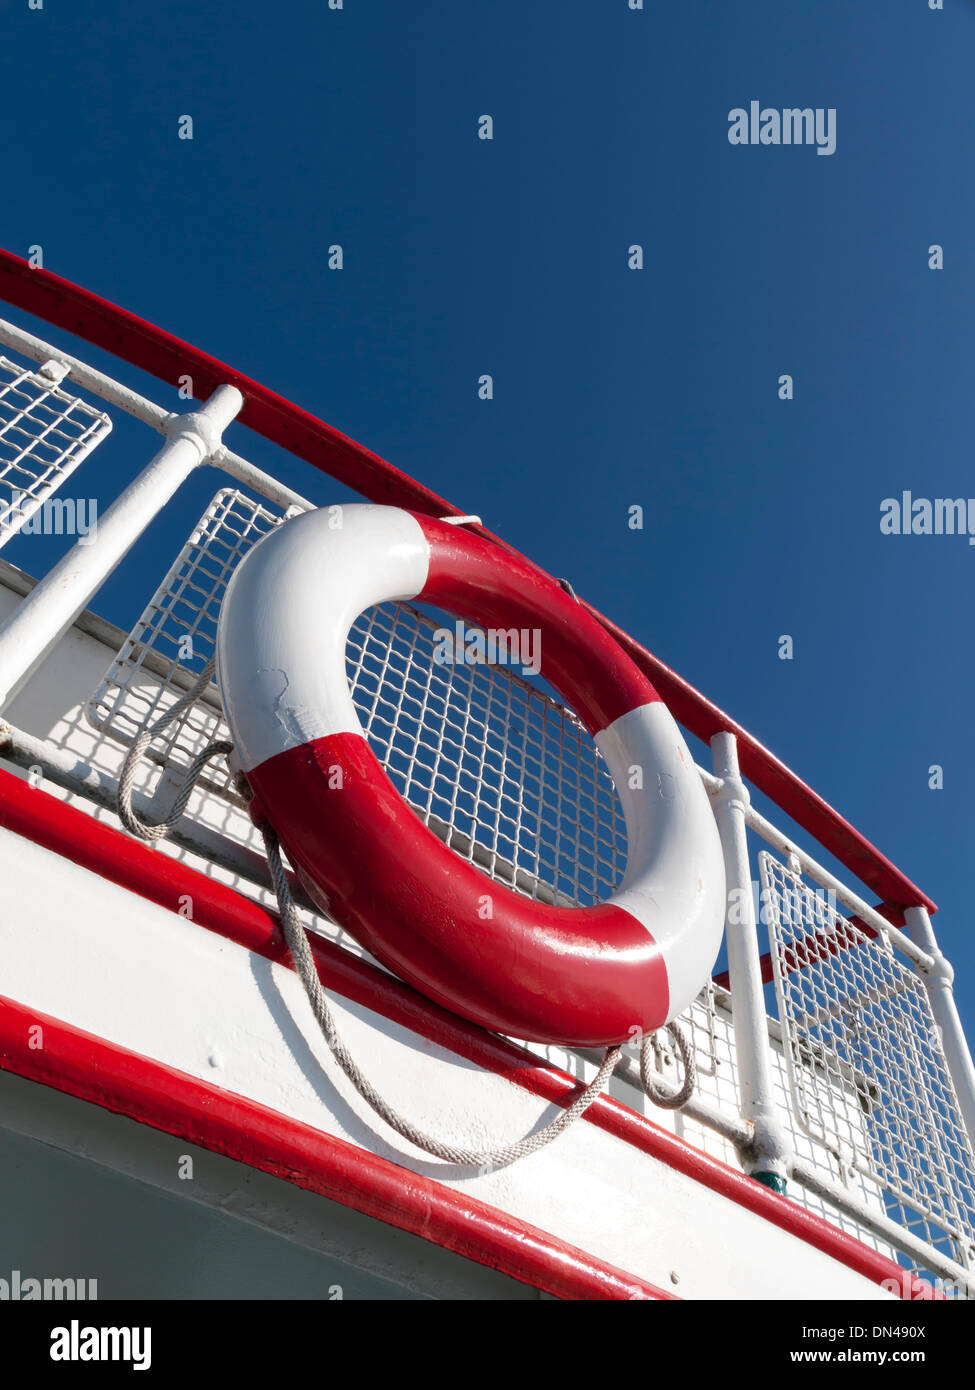 Bright red and white life-saver hanging off a boat's rail - Stock Image